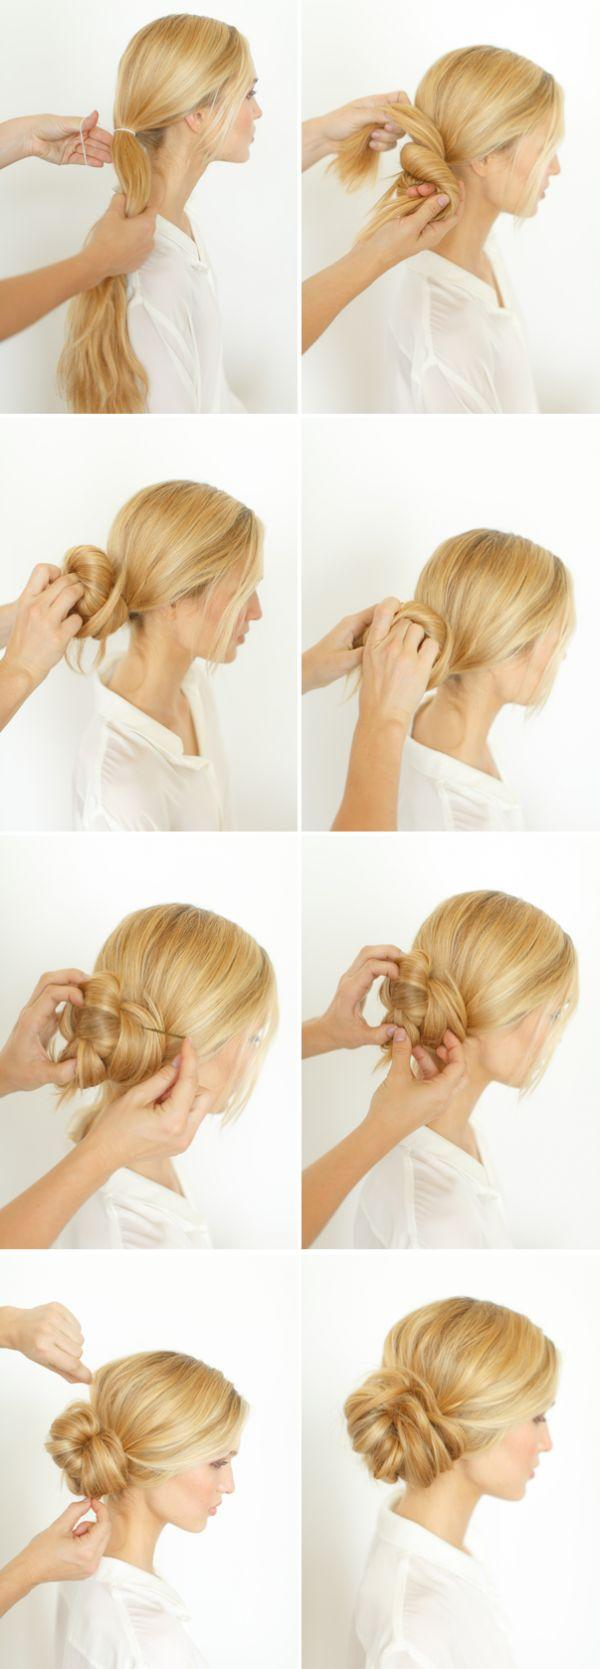 Boda - 12 Easy DIY Hairstyles That Will Not Take You More Than 5 Minutes